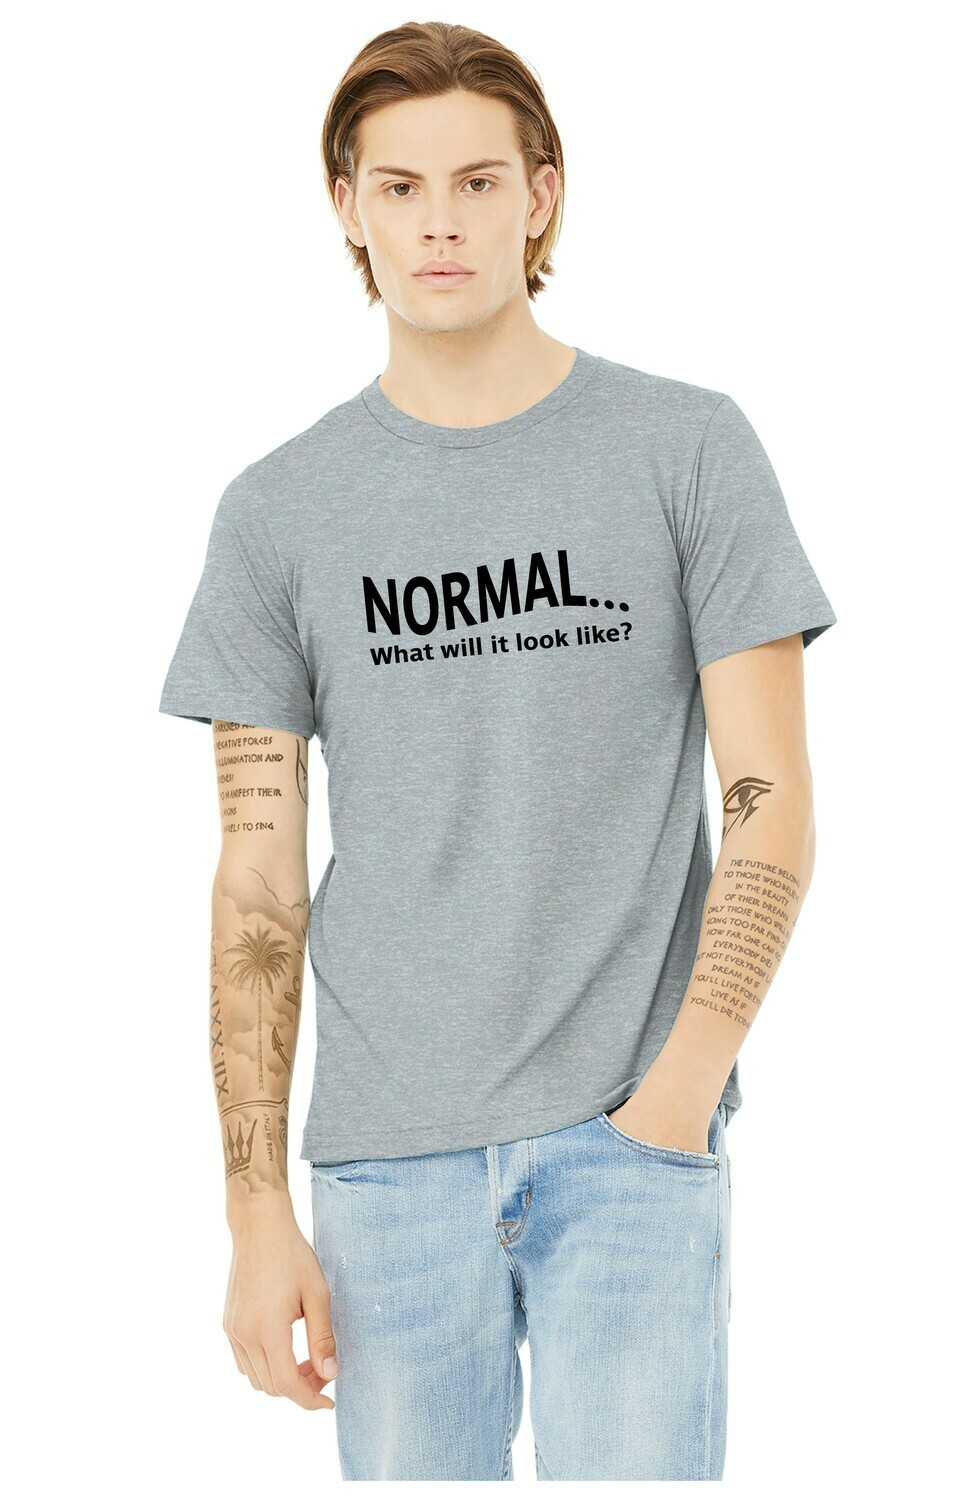 Donate T-Shirt to Goodwill